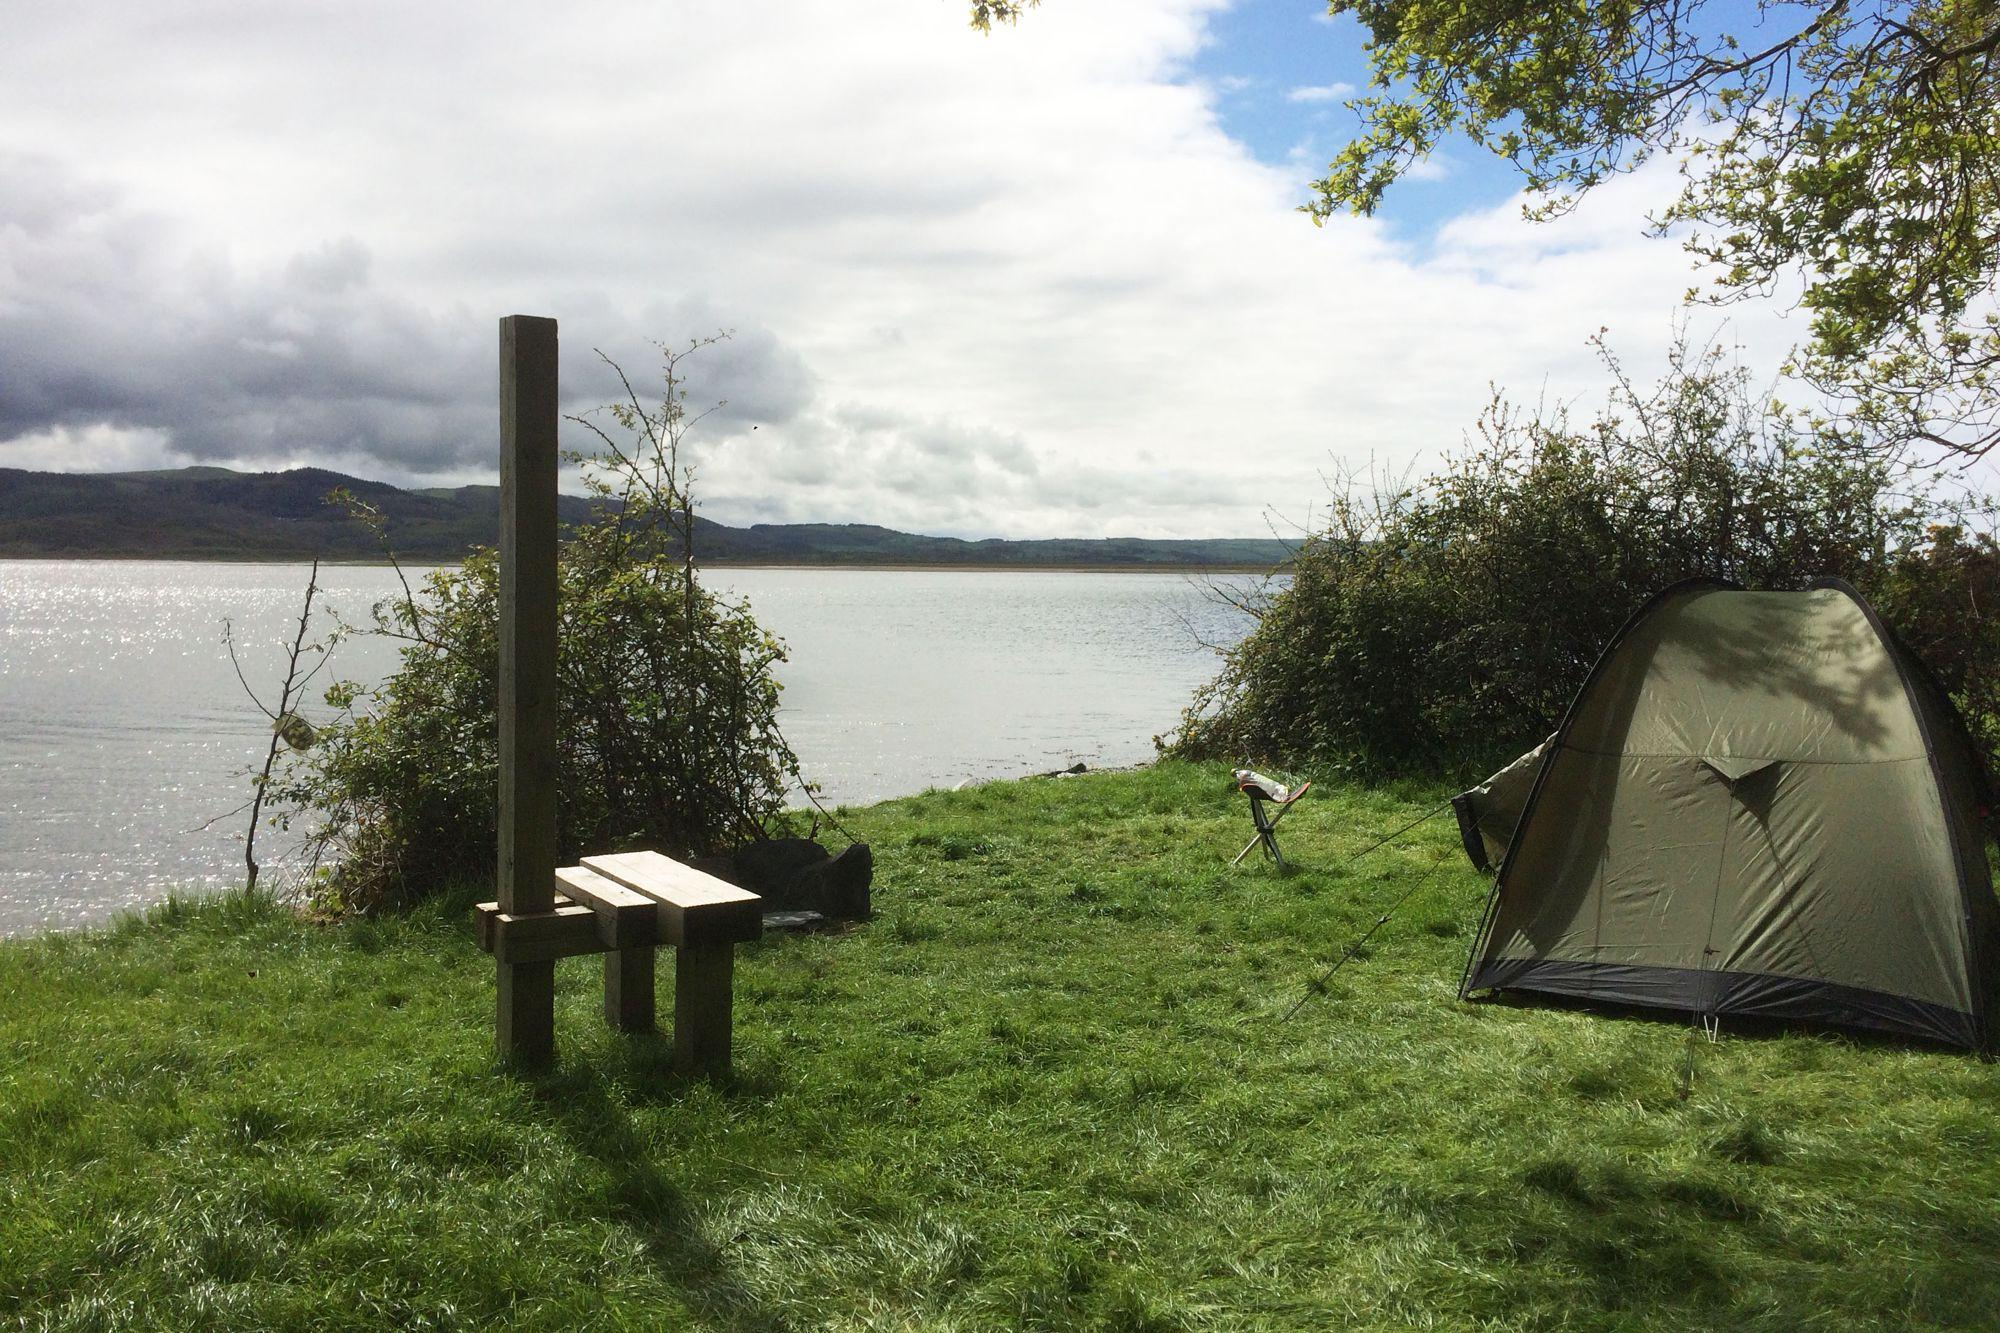 Smugglers Cove campsite